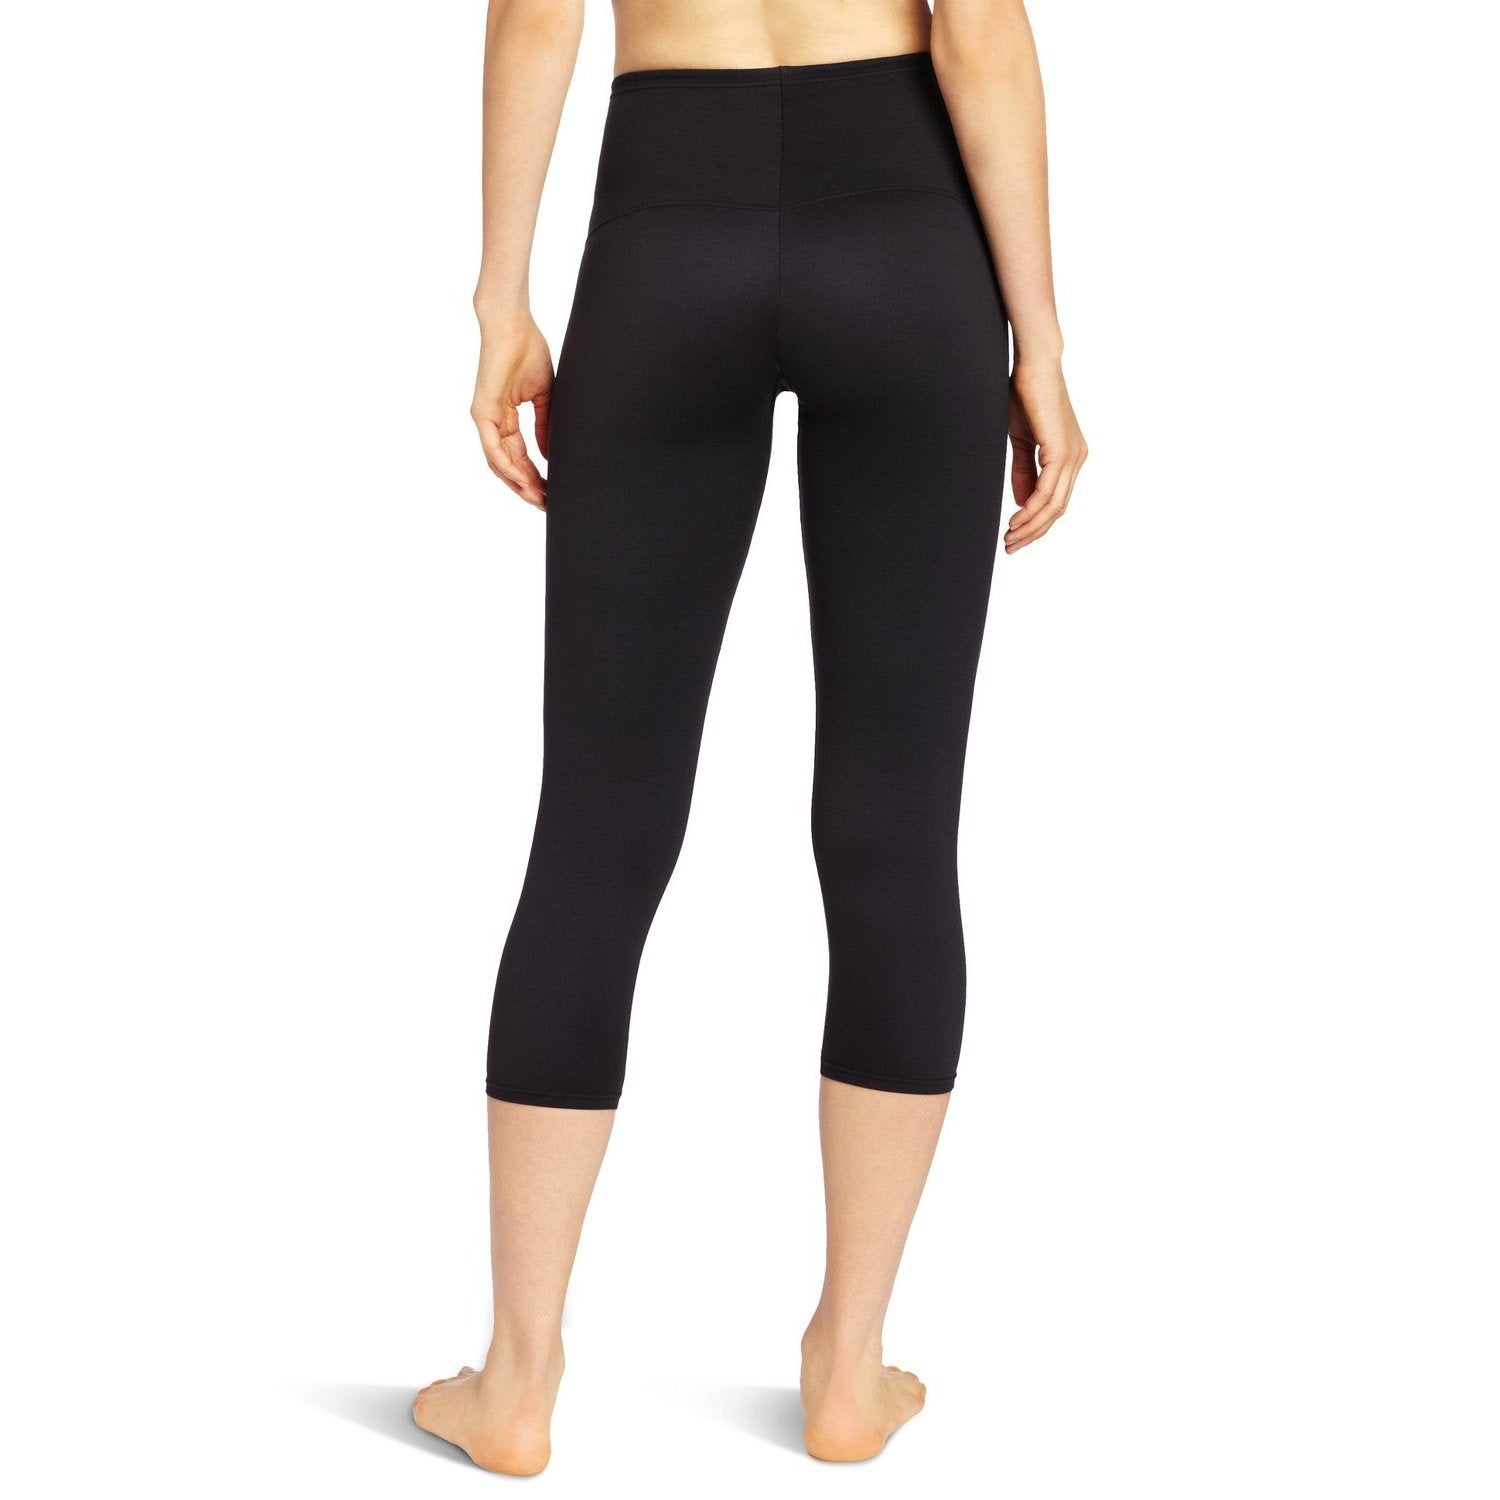 c36d593c96a Shop Flexees Women s Black  Fat Free  Dressing Leggings - On Sale - Free  Shipping On Orders Over  45 - Overstock - 9096506